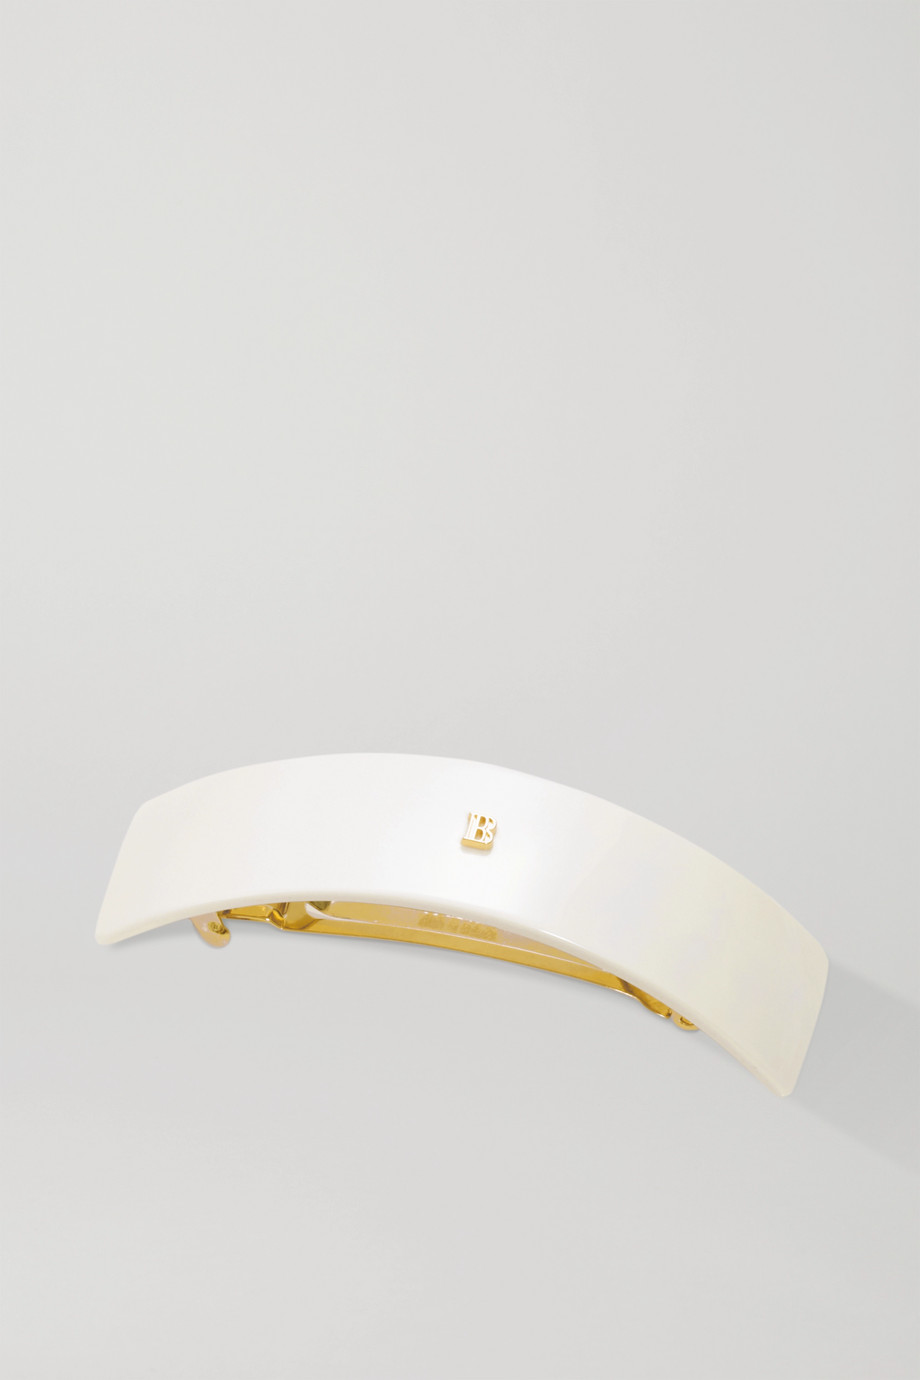 BALMAIN PARIS HAIR COUTURE Large acetate hair clip - White